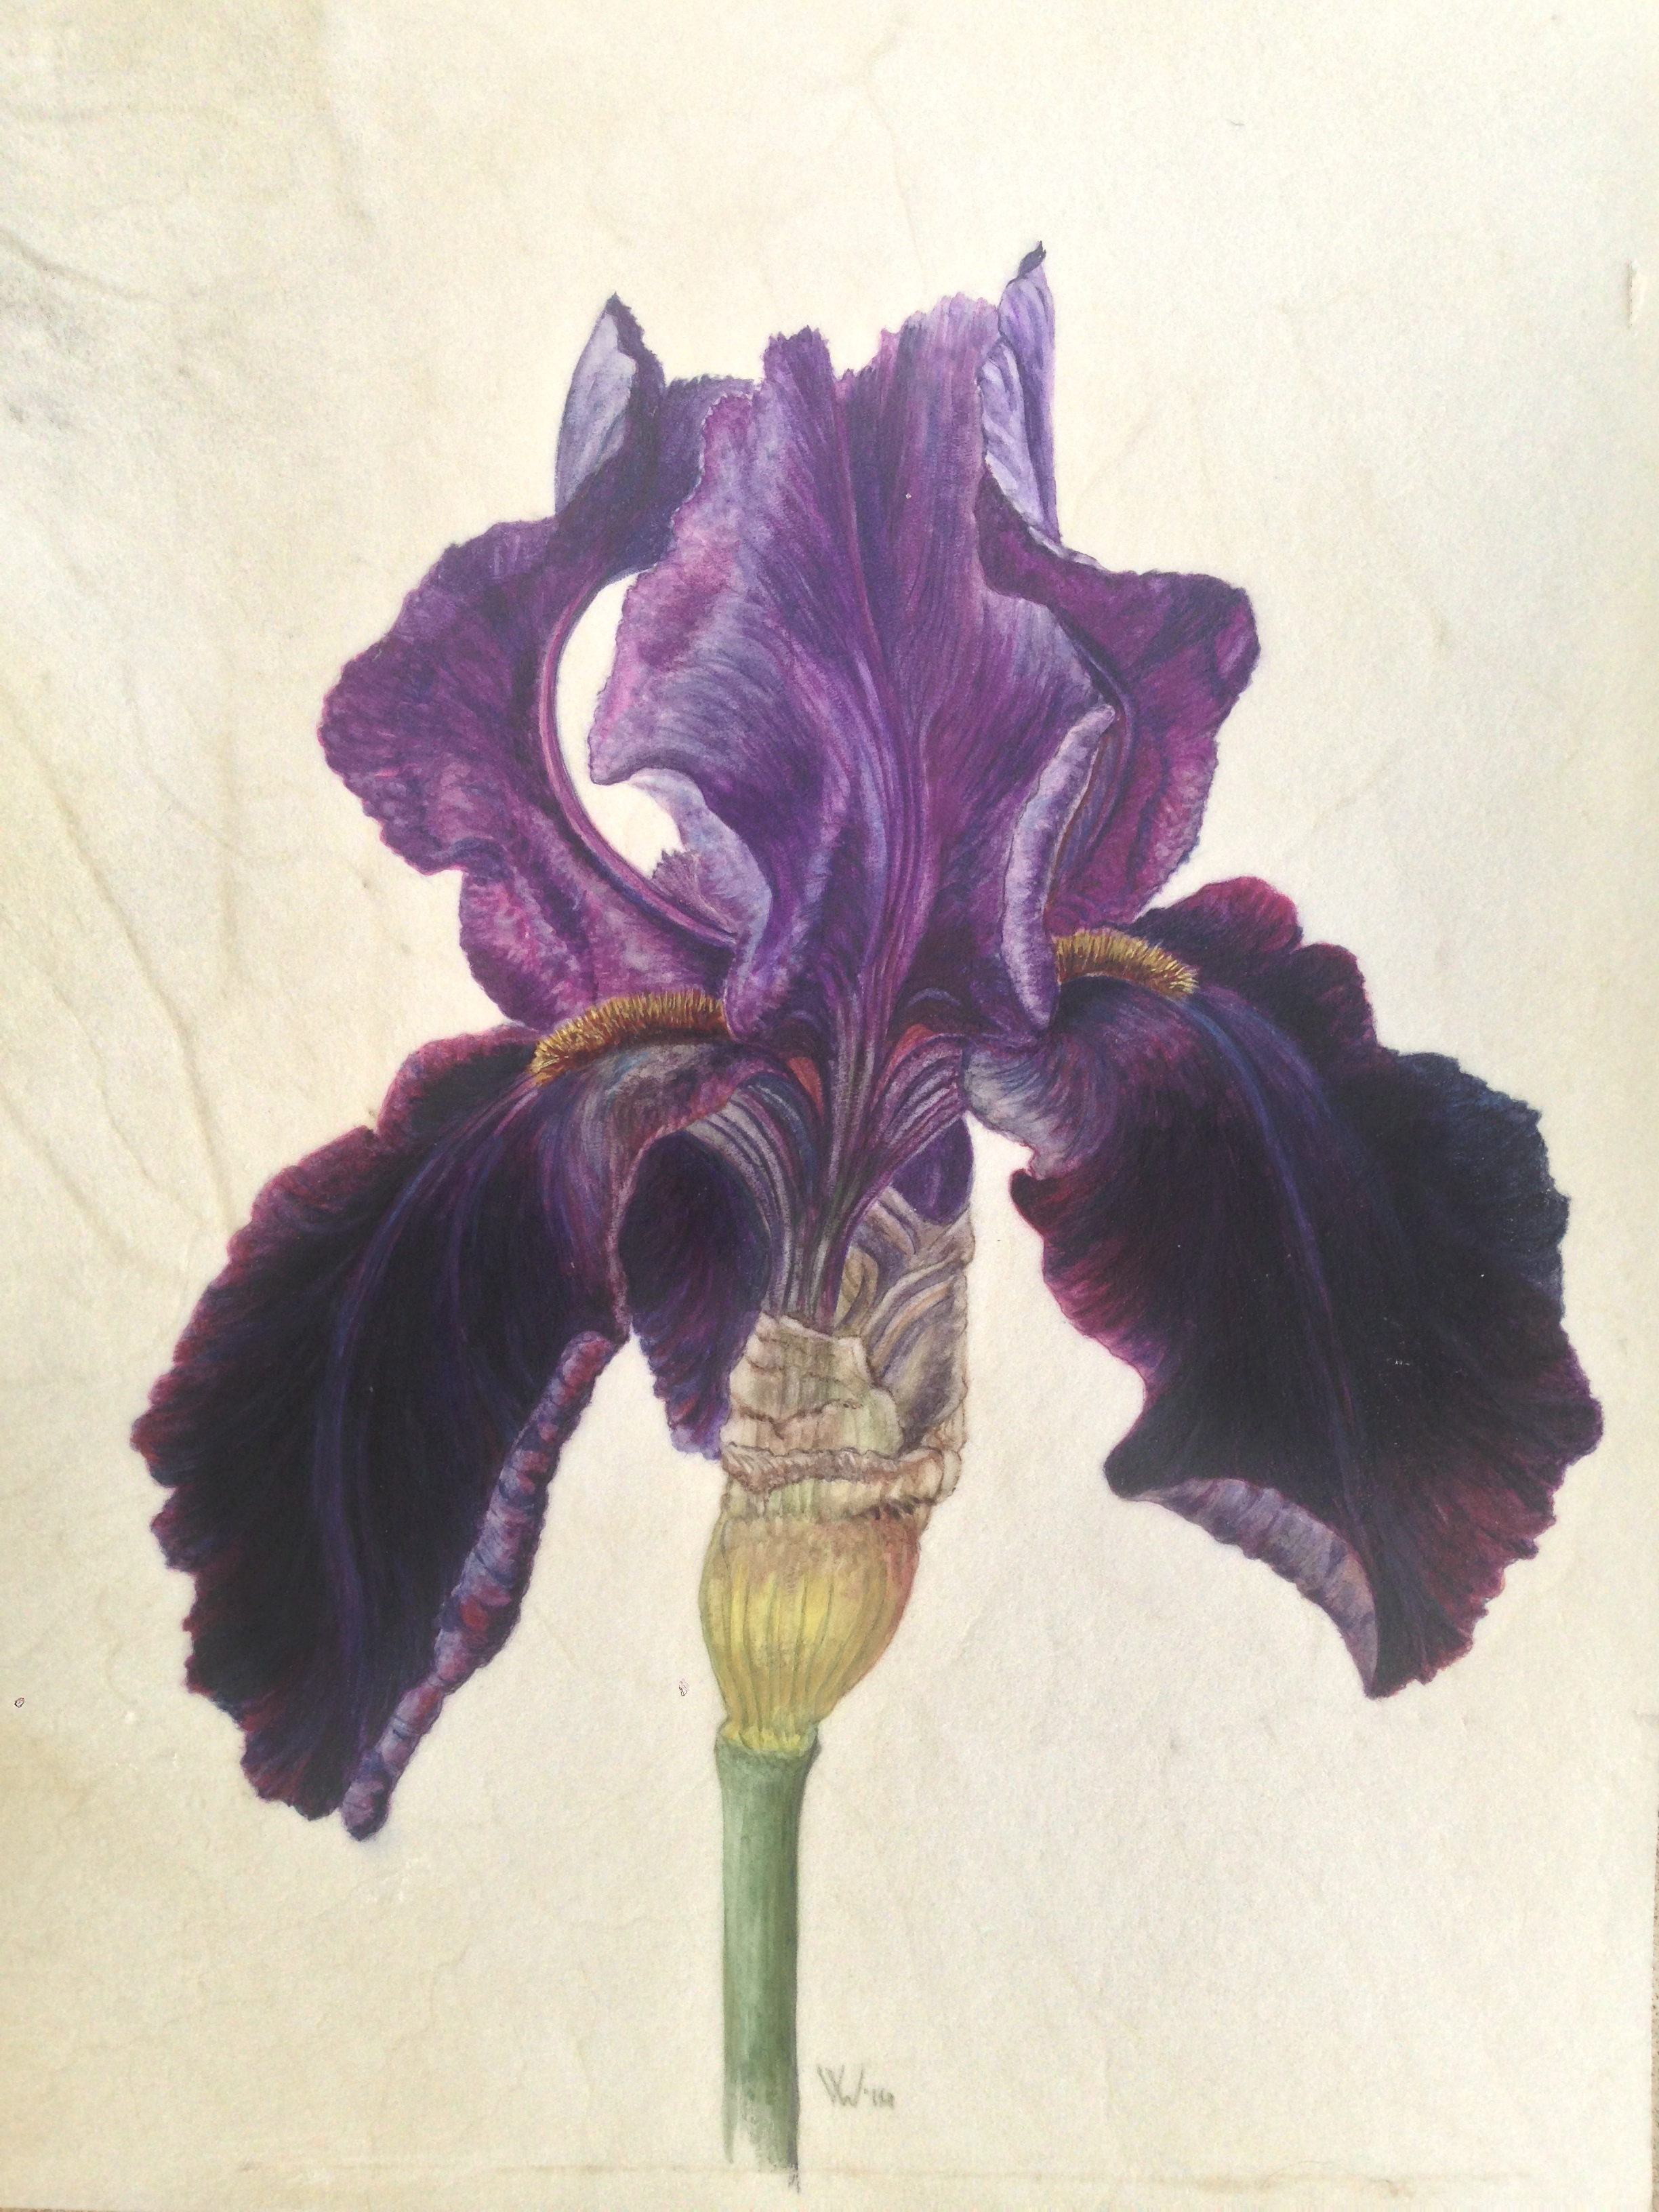 Lot 38 - Veronica Ward Study of a Black Iris water colour on vellum signed on front VW Executed in 2014 23 x